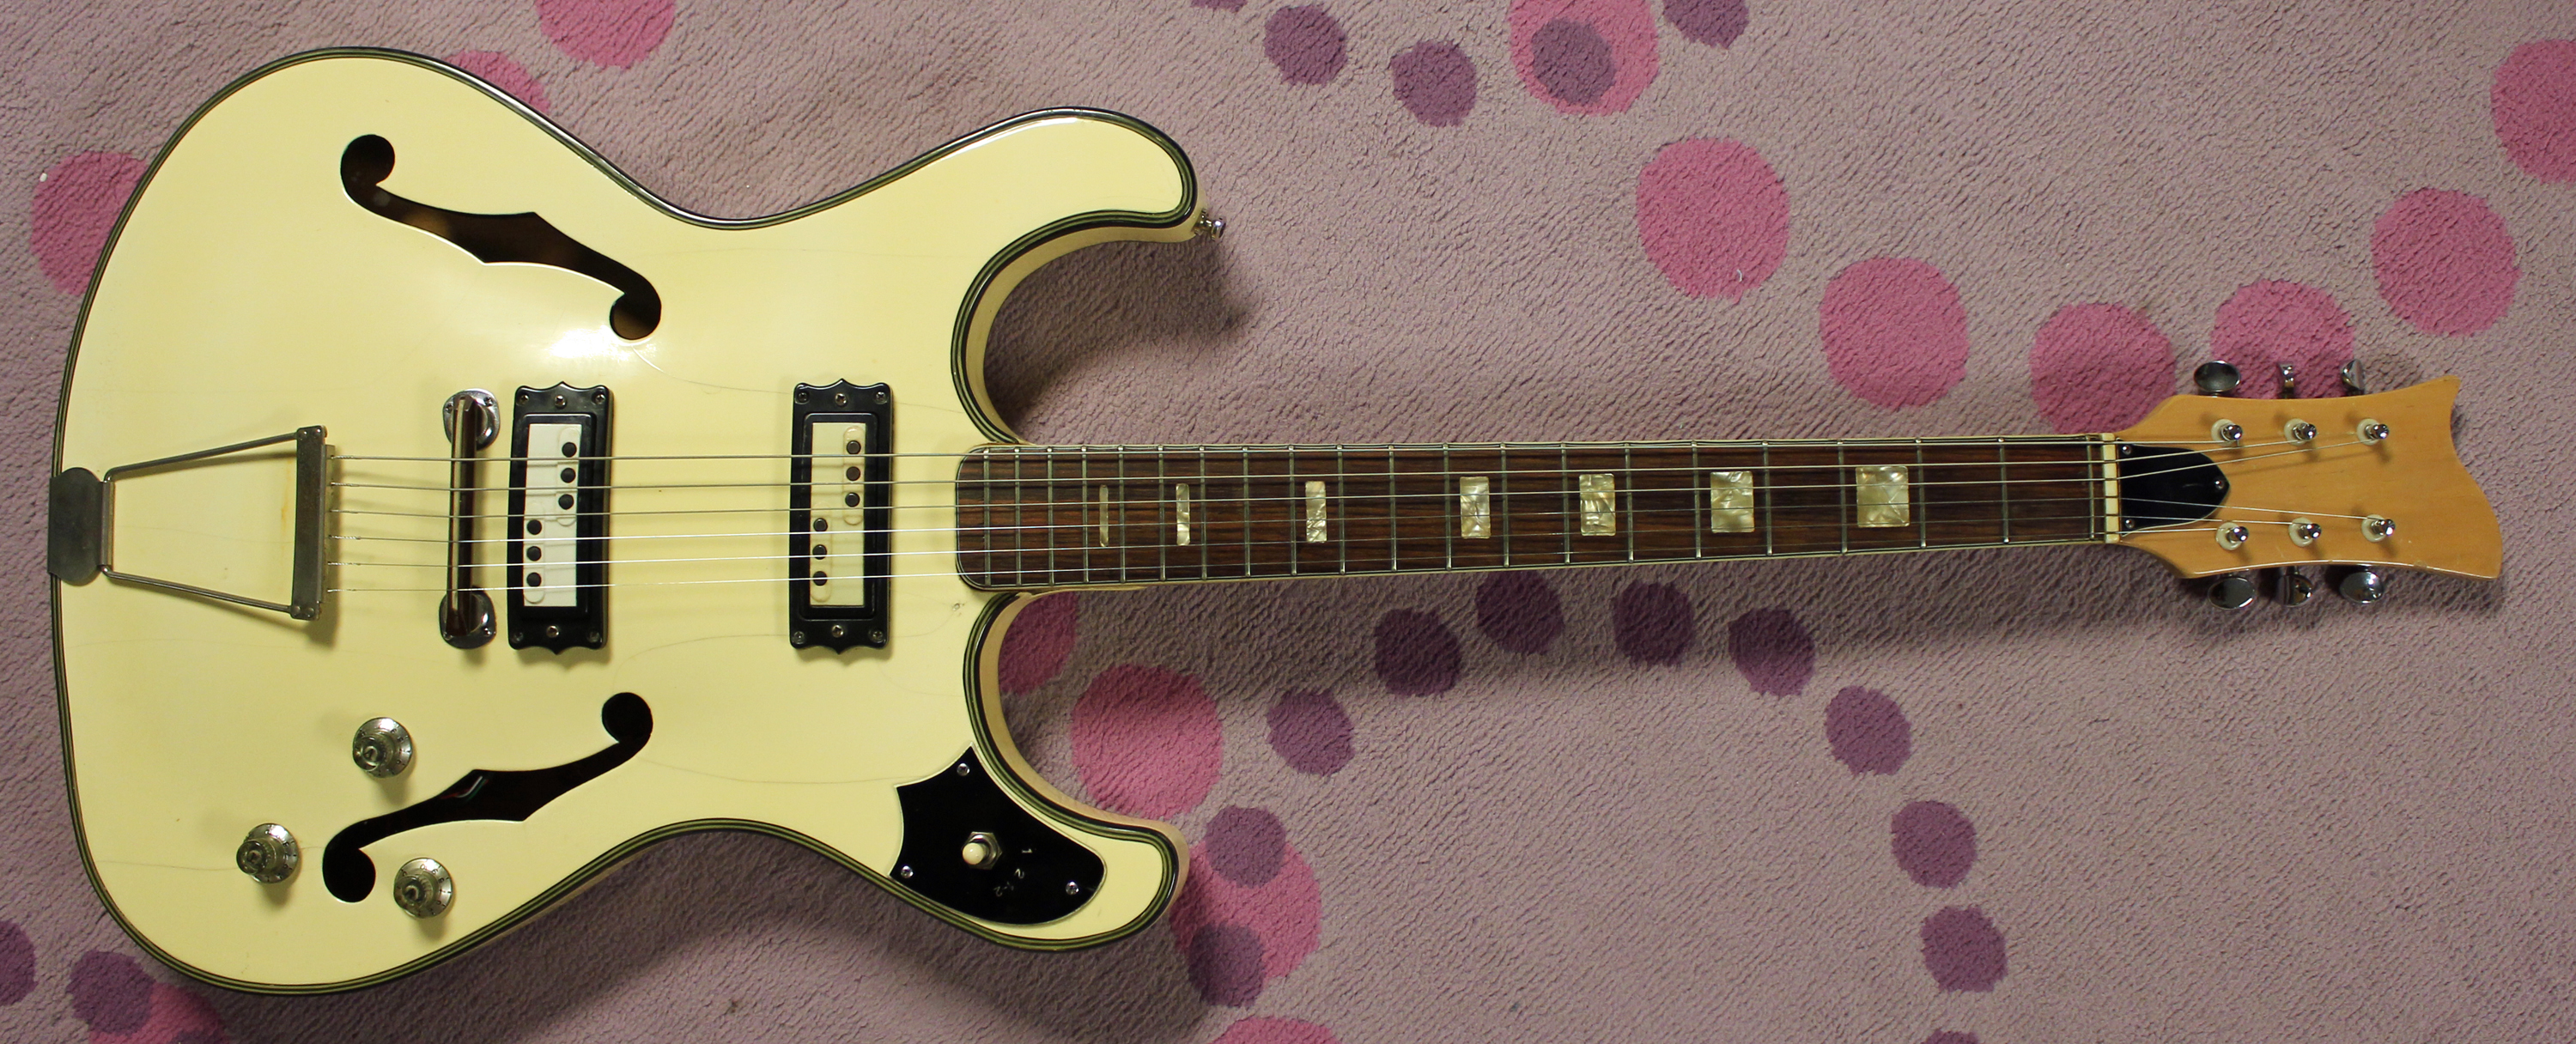 the white knight 1967 fandel s2 c japanese guitar firstman liberty drowning in guitars. Black Bedroom Furniture Sets. Home Design Ideas